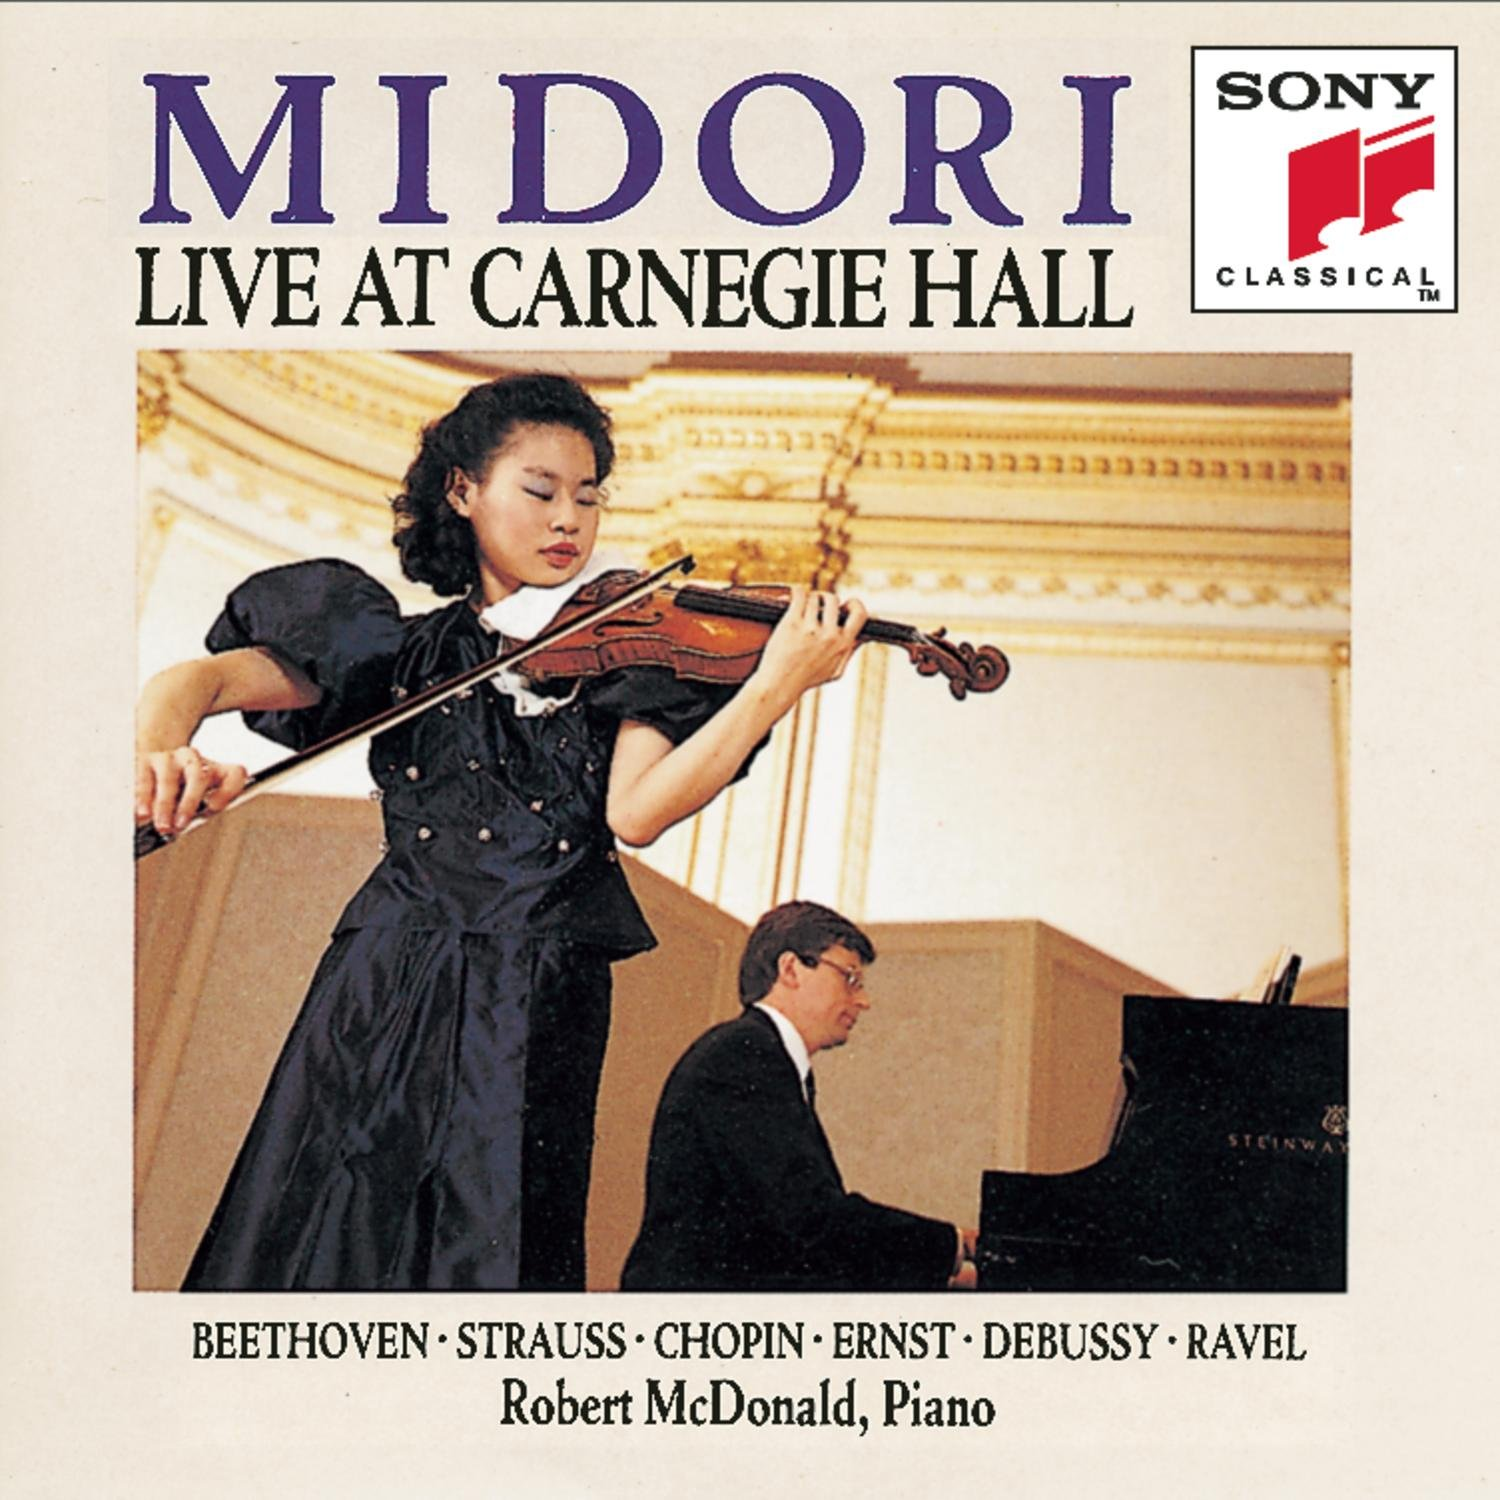 Midori - Live at Carnegie Hall by Alliance